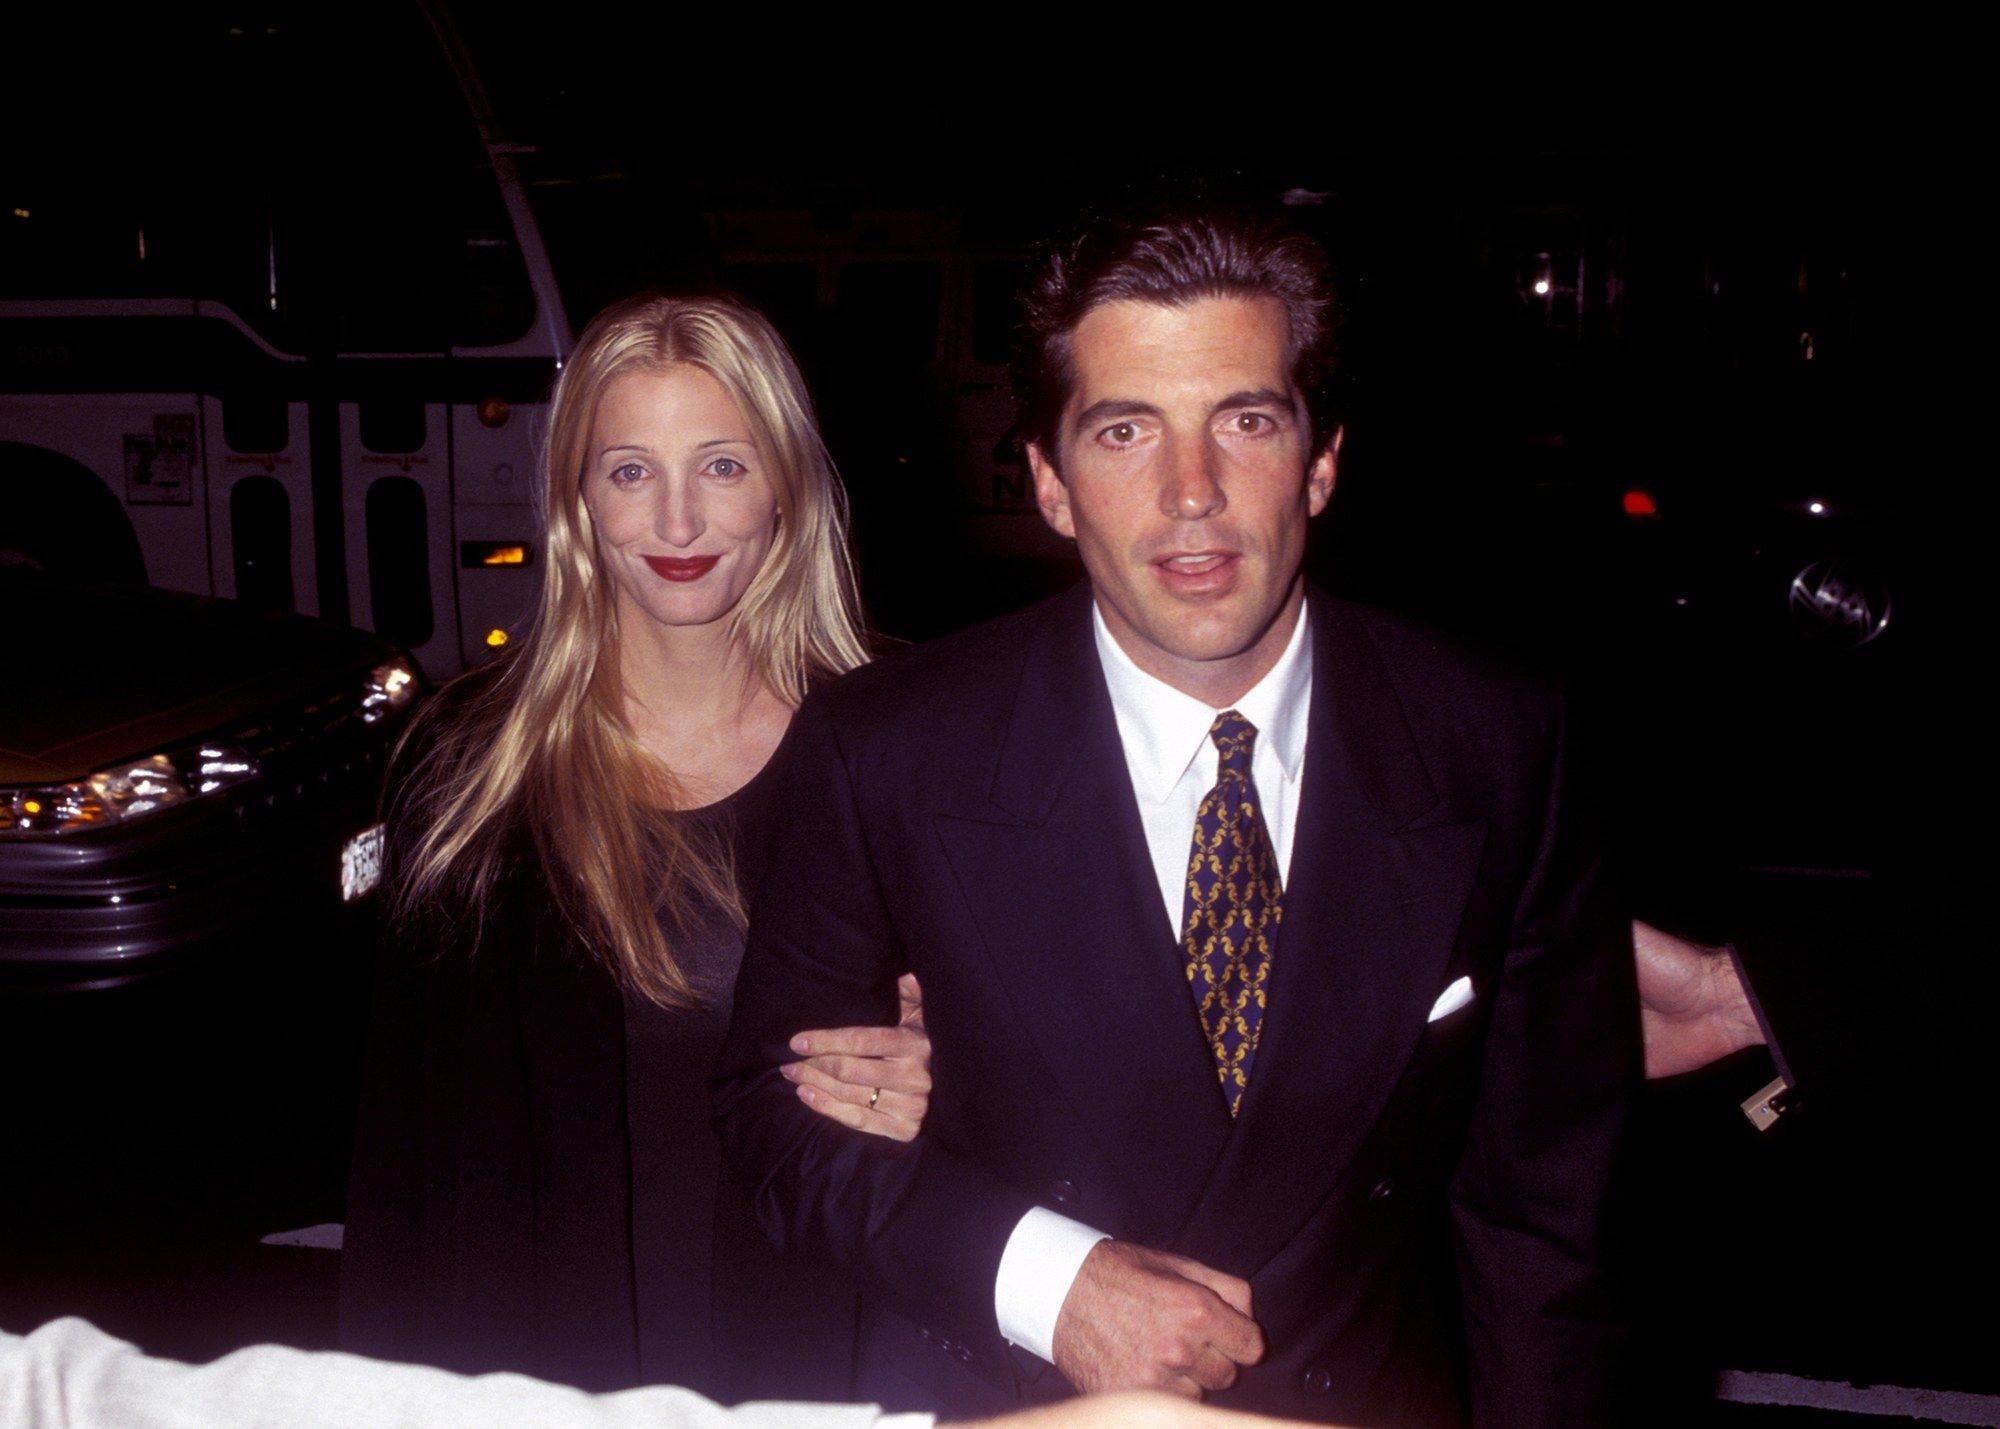 A Look Back At Carolyn Bessette Kennedy And John F Kennedy, Jr's Romance